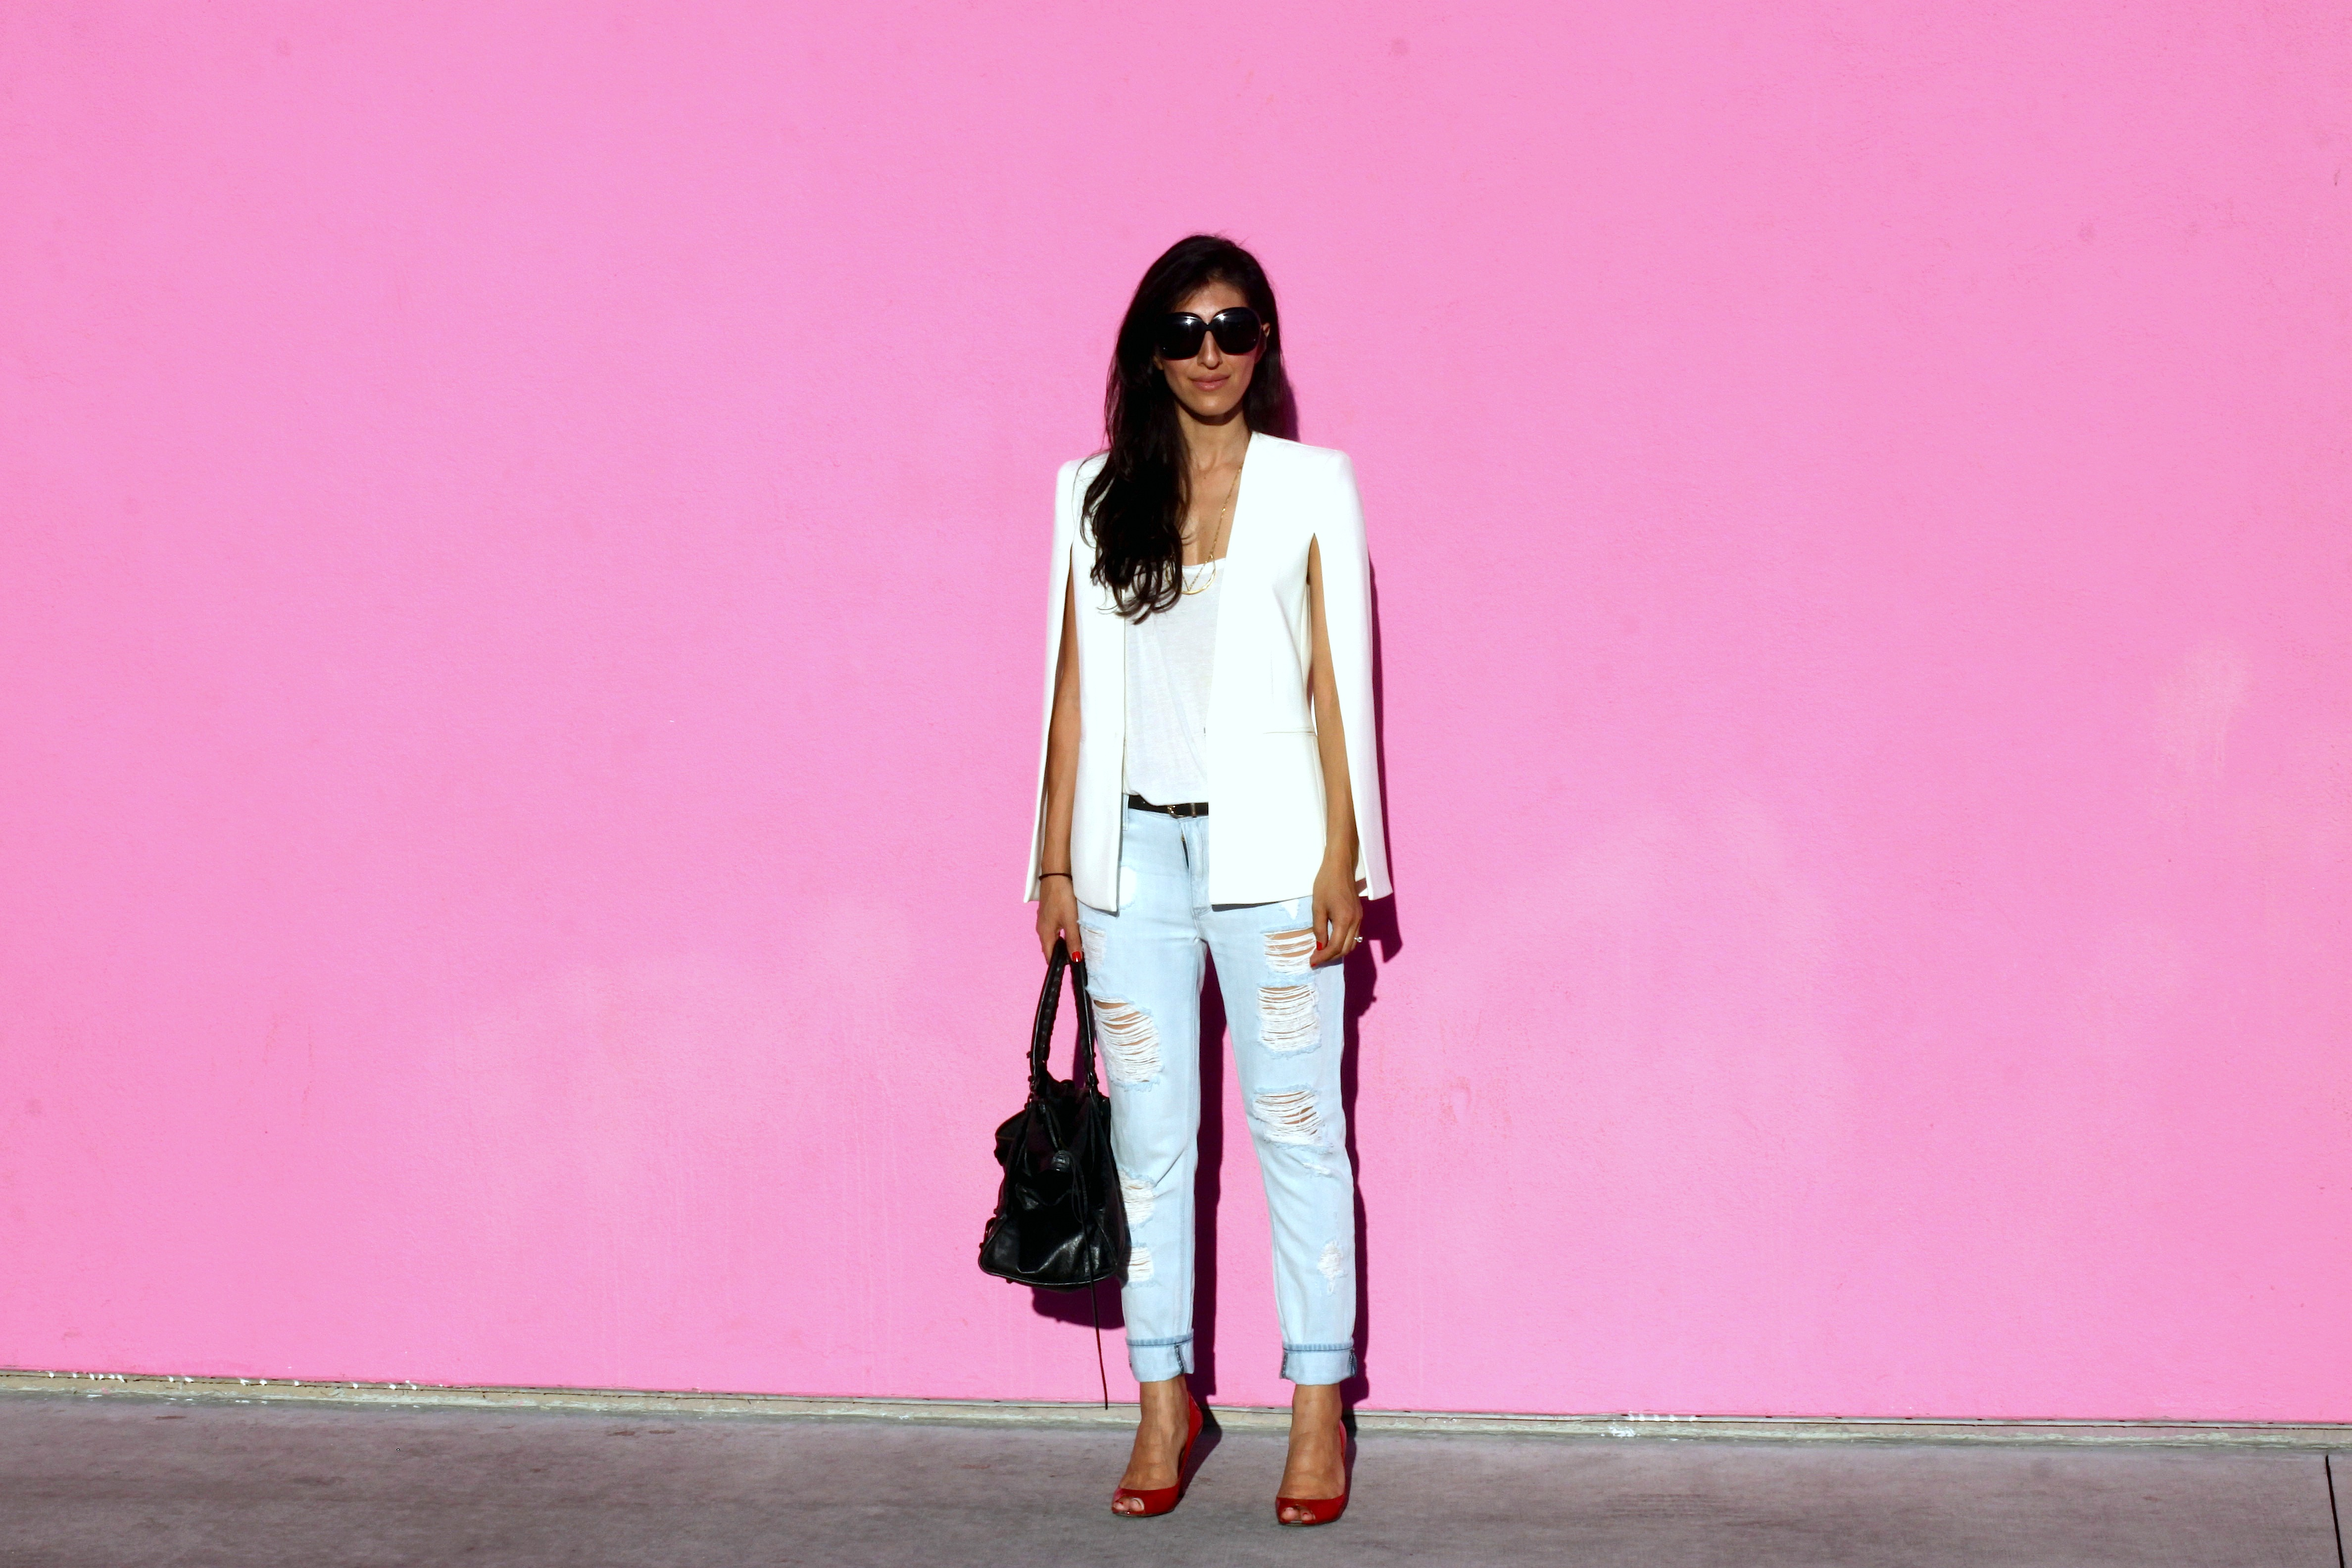 And AGAIN! :) Can't help it - I'm a girly girl and love pink walls!